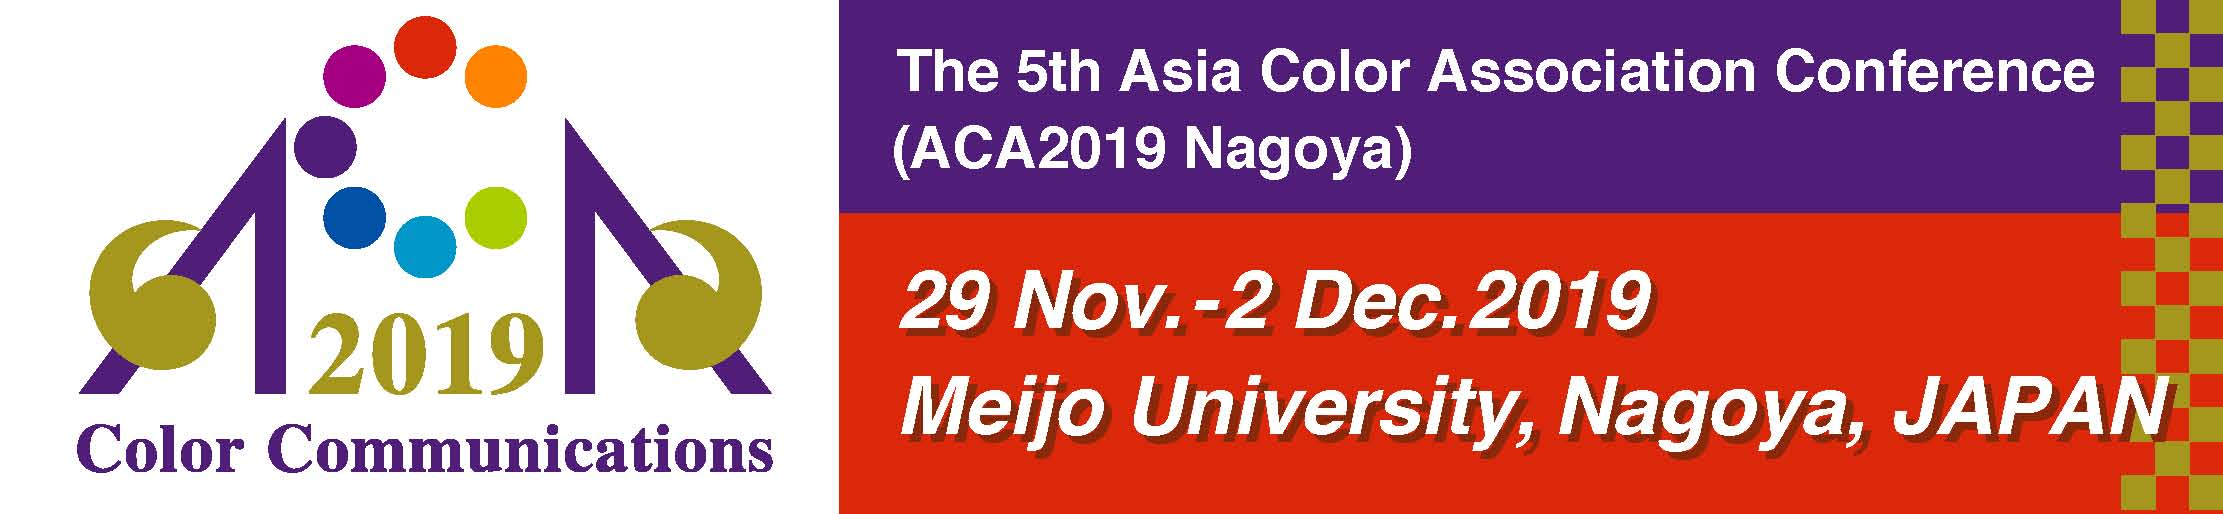 ACA 2018 Inspiration in Color The 4th Asia Color Association Conference